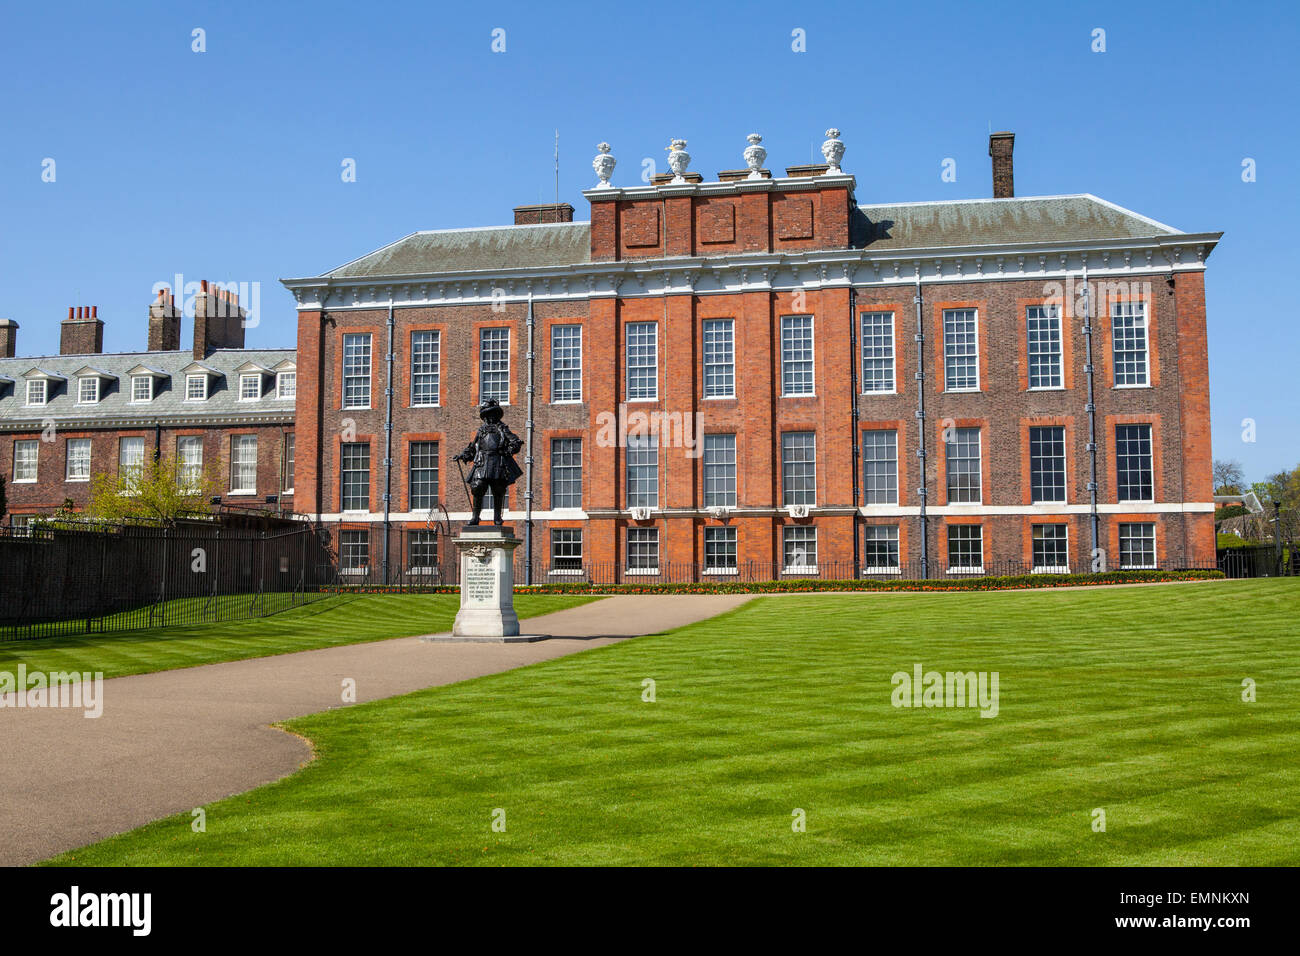 A view of the magnificent Kensington Palace in London with the statue of King William III in the foreground. - Stock Image